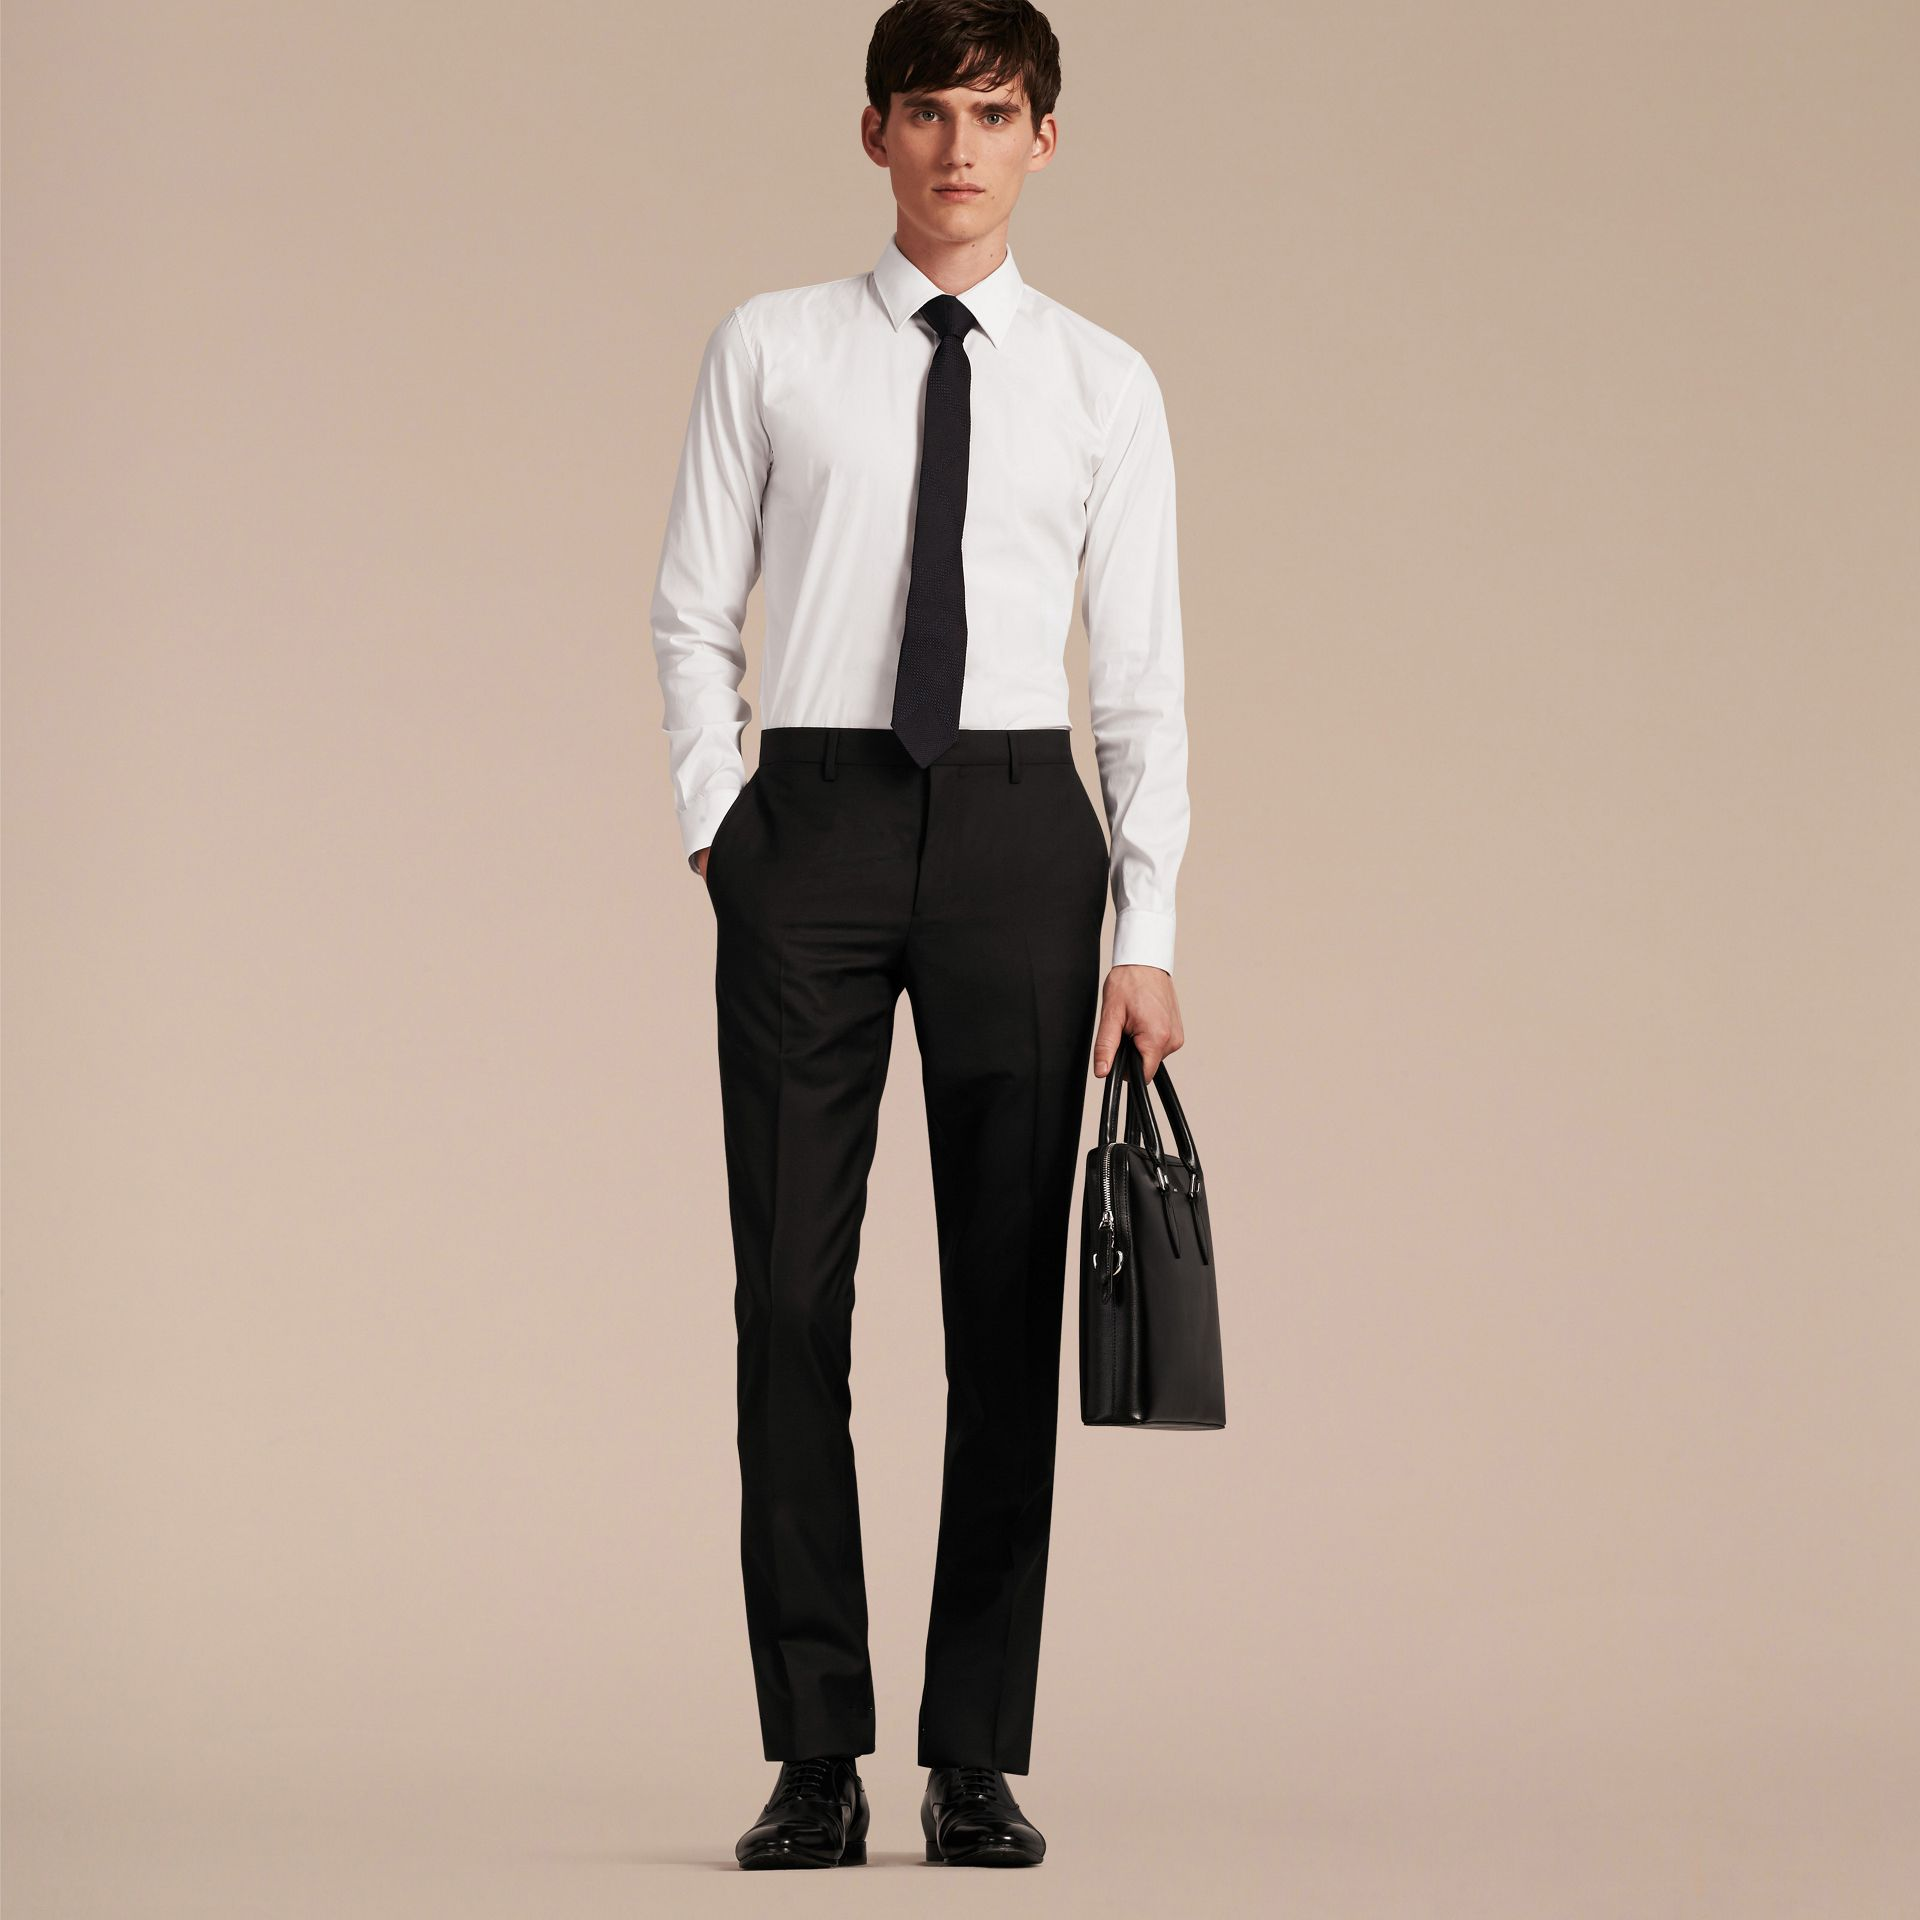 Pantalon de coupe slim en laine (Noir) - Homme | Burberry - photo de la galerie 6